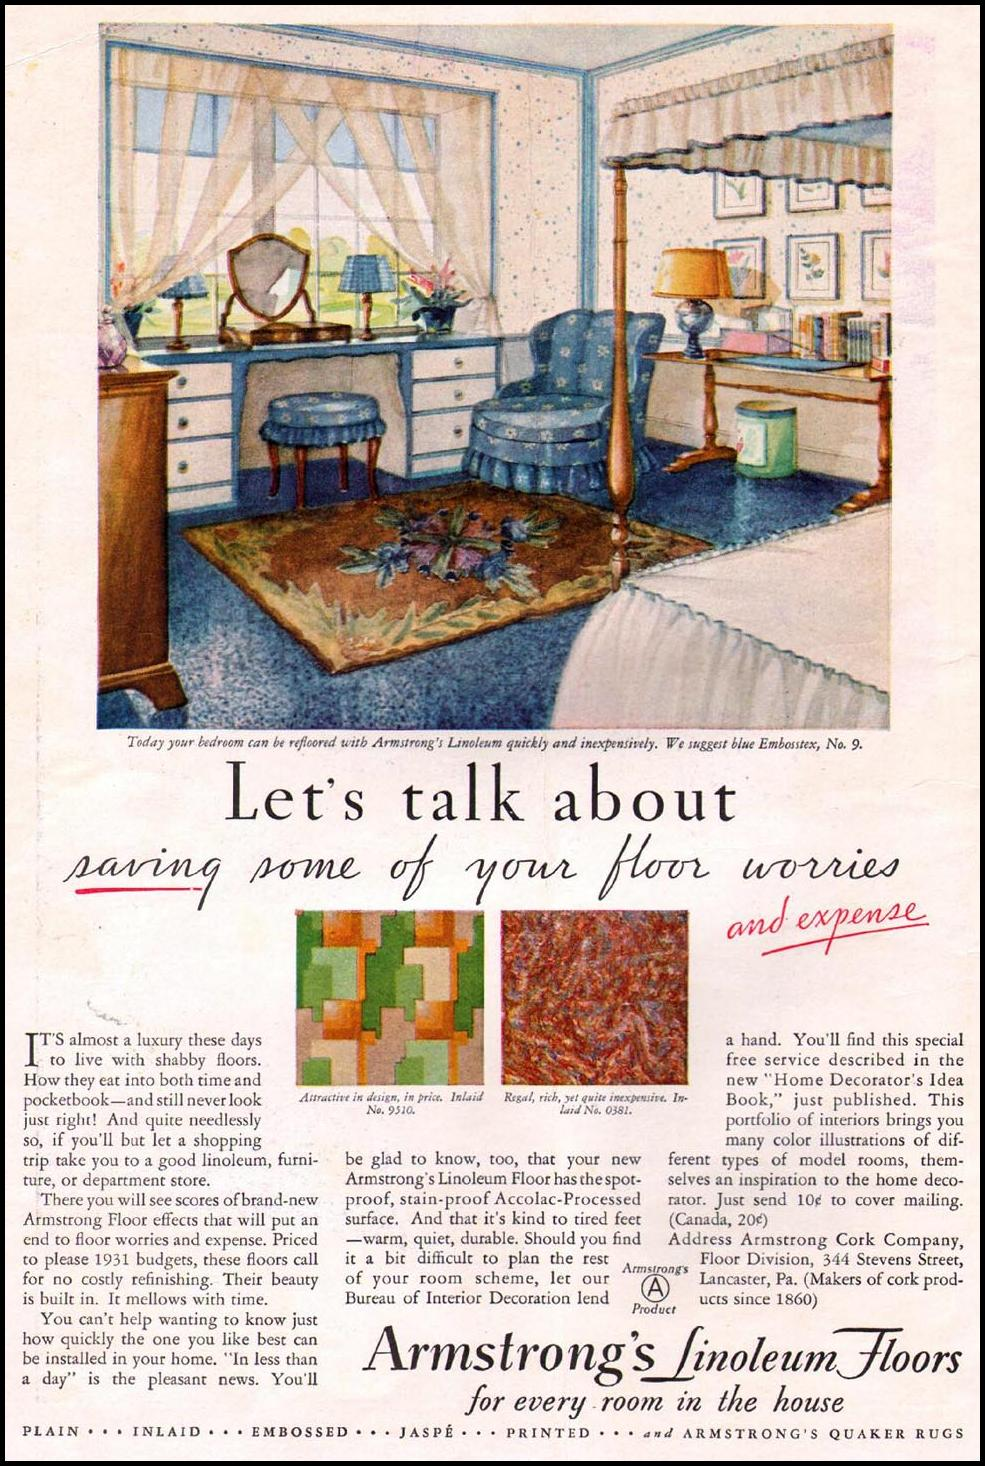 ARMSTRONG LINOLEUM FLOORS BETTER HOMES AND GARDENS 08/01/1931 INSIDE FRONT